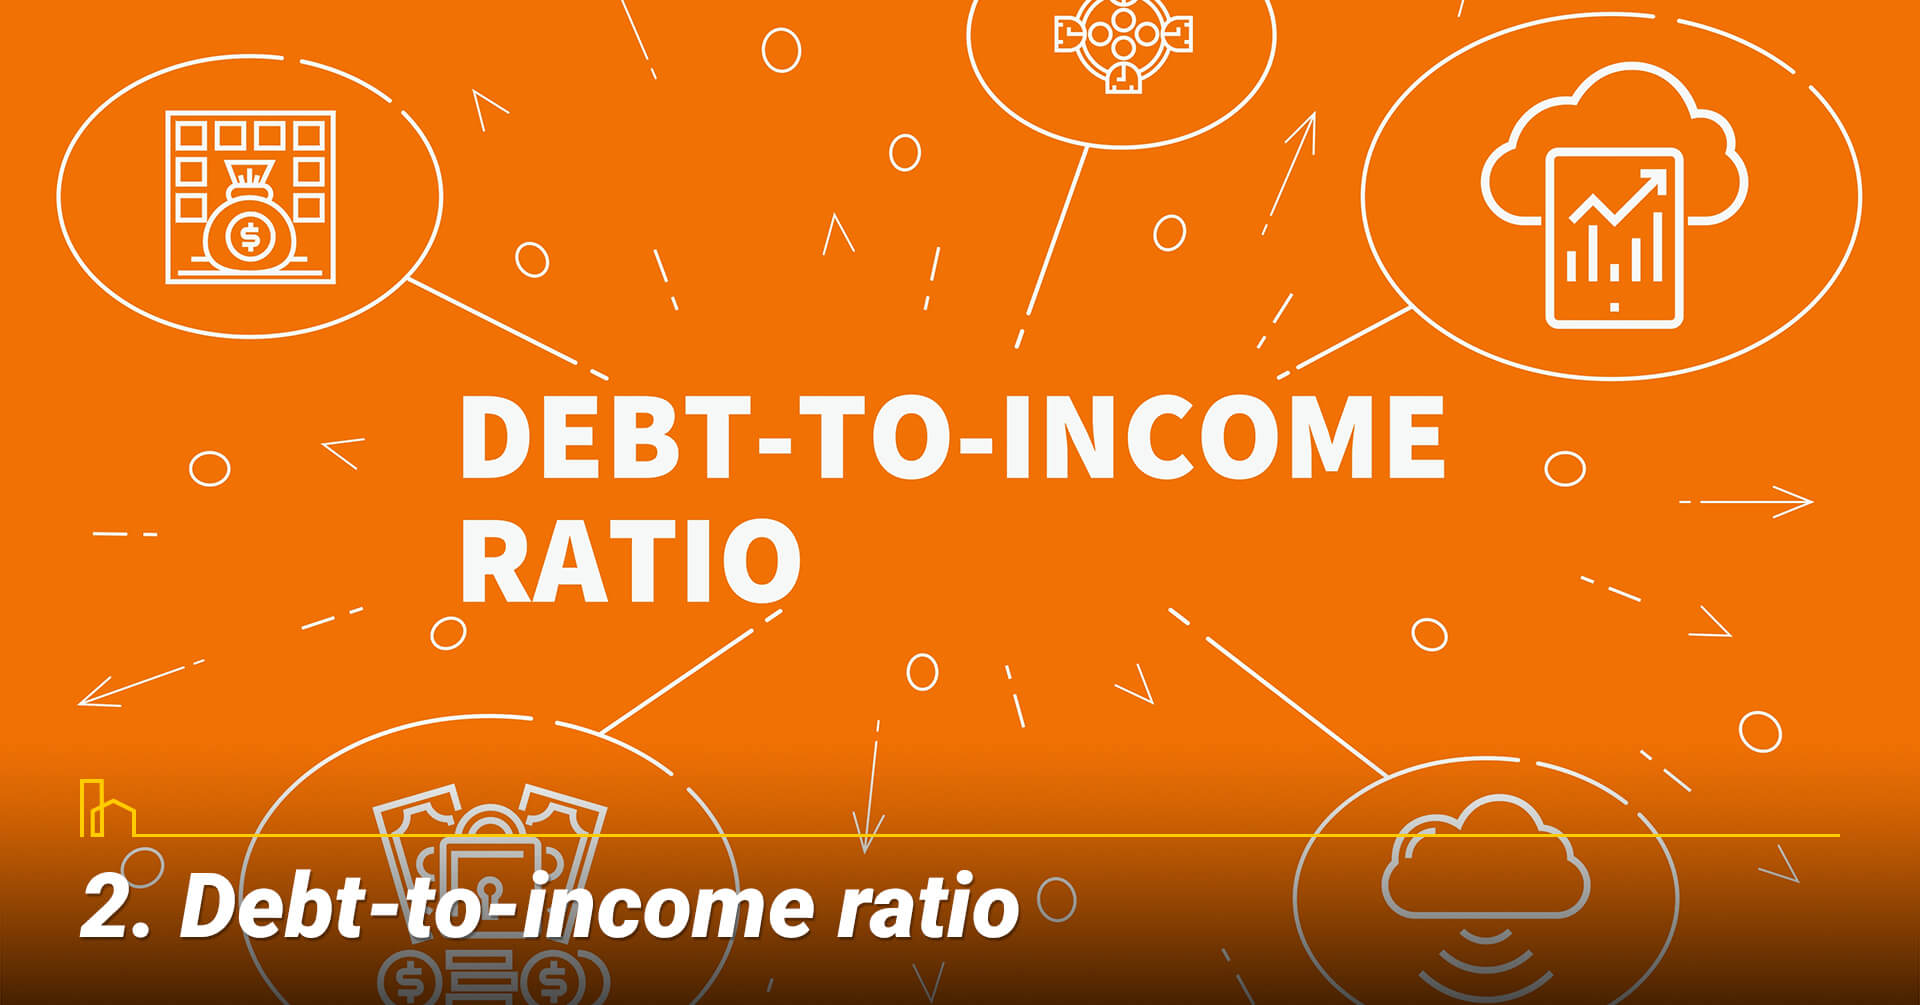 Debt-to-income ratio, know how much you owe and how much you make